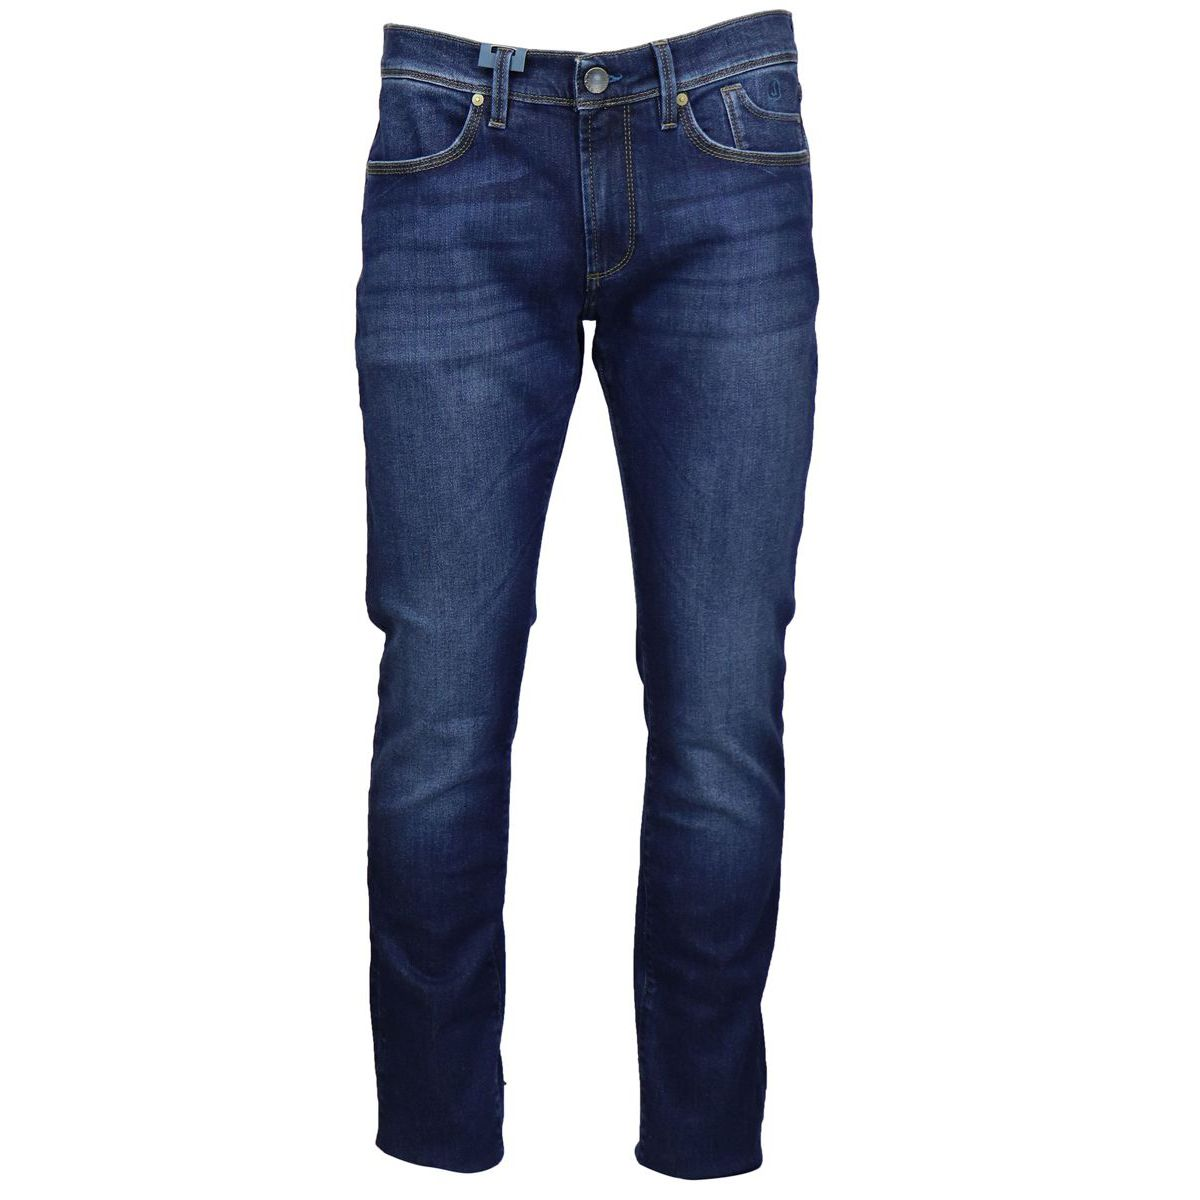 Slim 5-pocket jeans in dark denim Dark denim Jeckerson